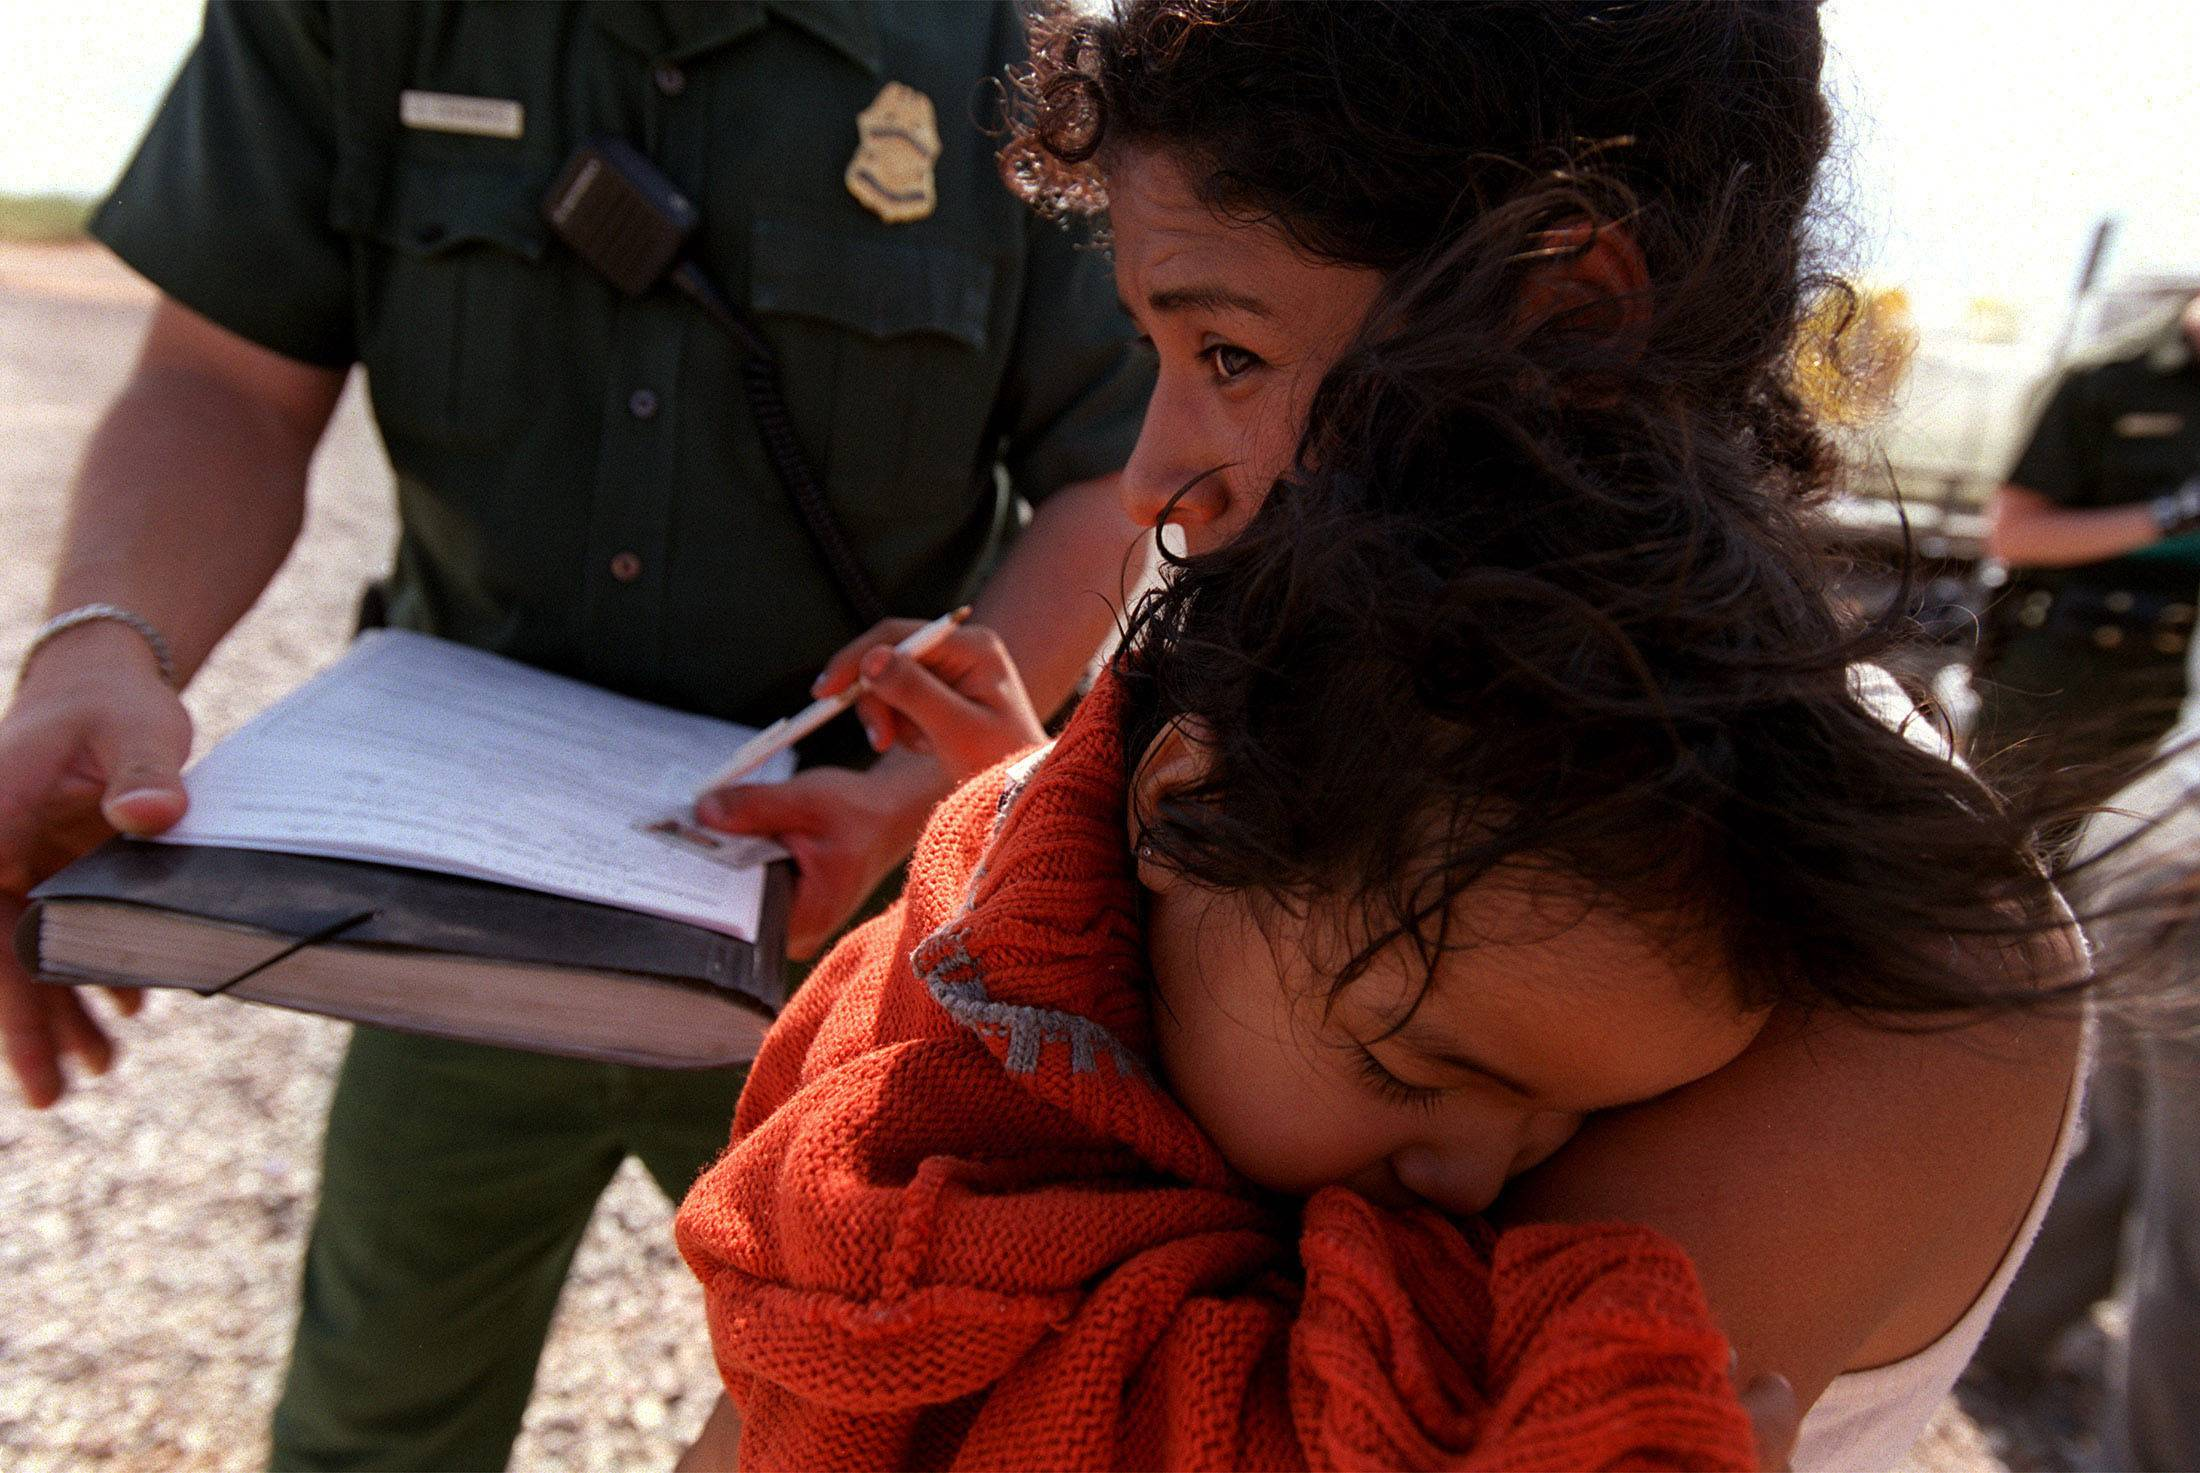 A Mexican woman cradles her listless daughter in her arms as a U.S. Border Patrol agent processes them for transport back to Mexico. The two were found stuffed in the small, metal toolbox compartment of a pickup truck along with 19 other illegals just a few miles north of the Arizona -- Mexico border. It was 102 degrees that day.